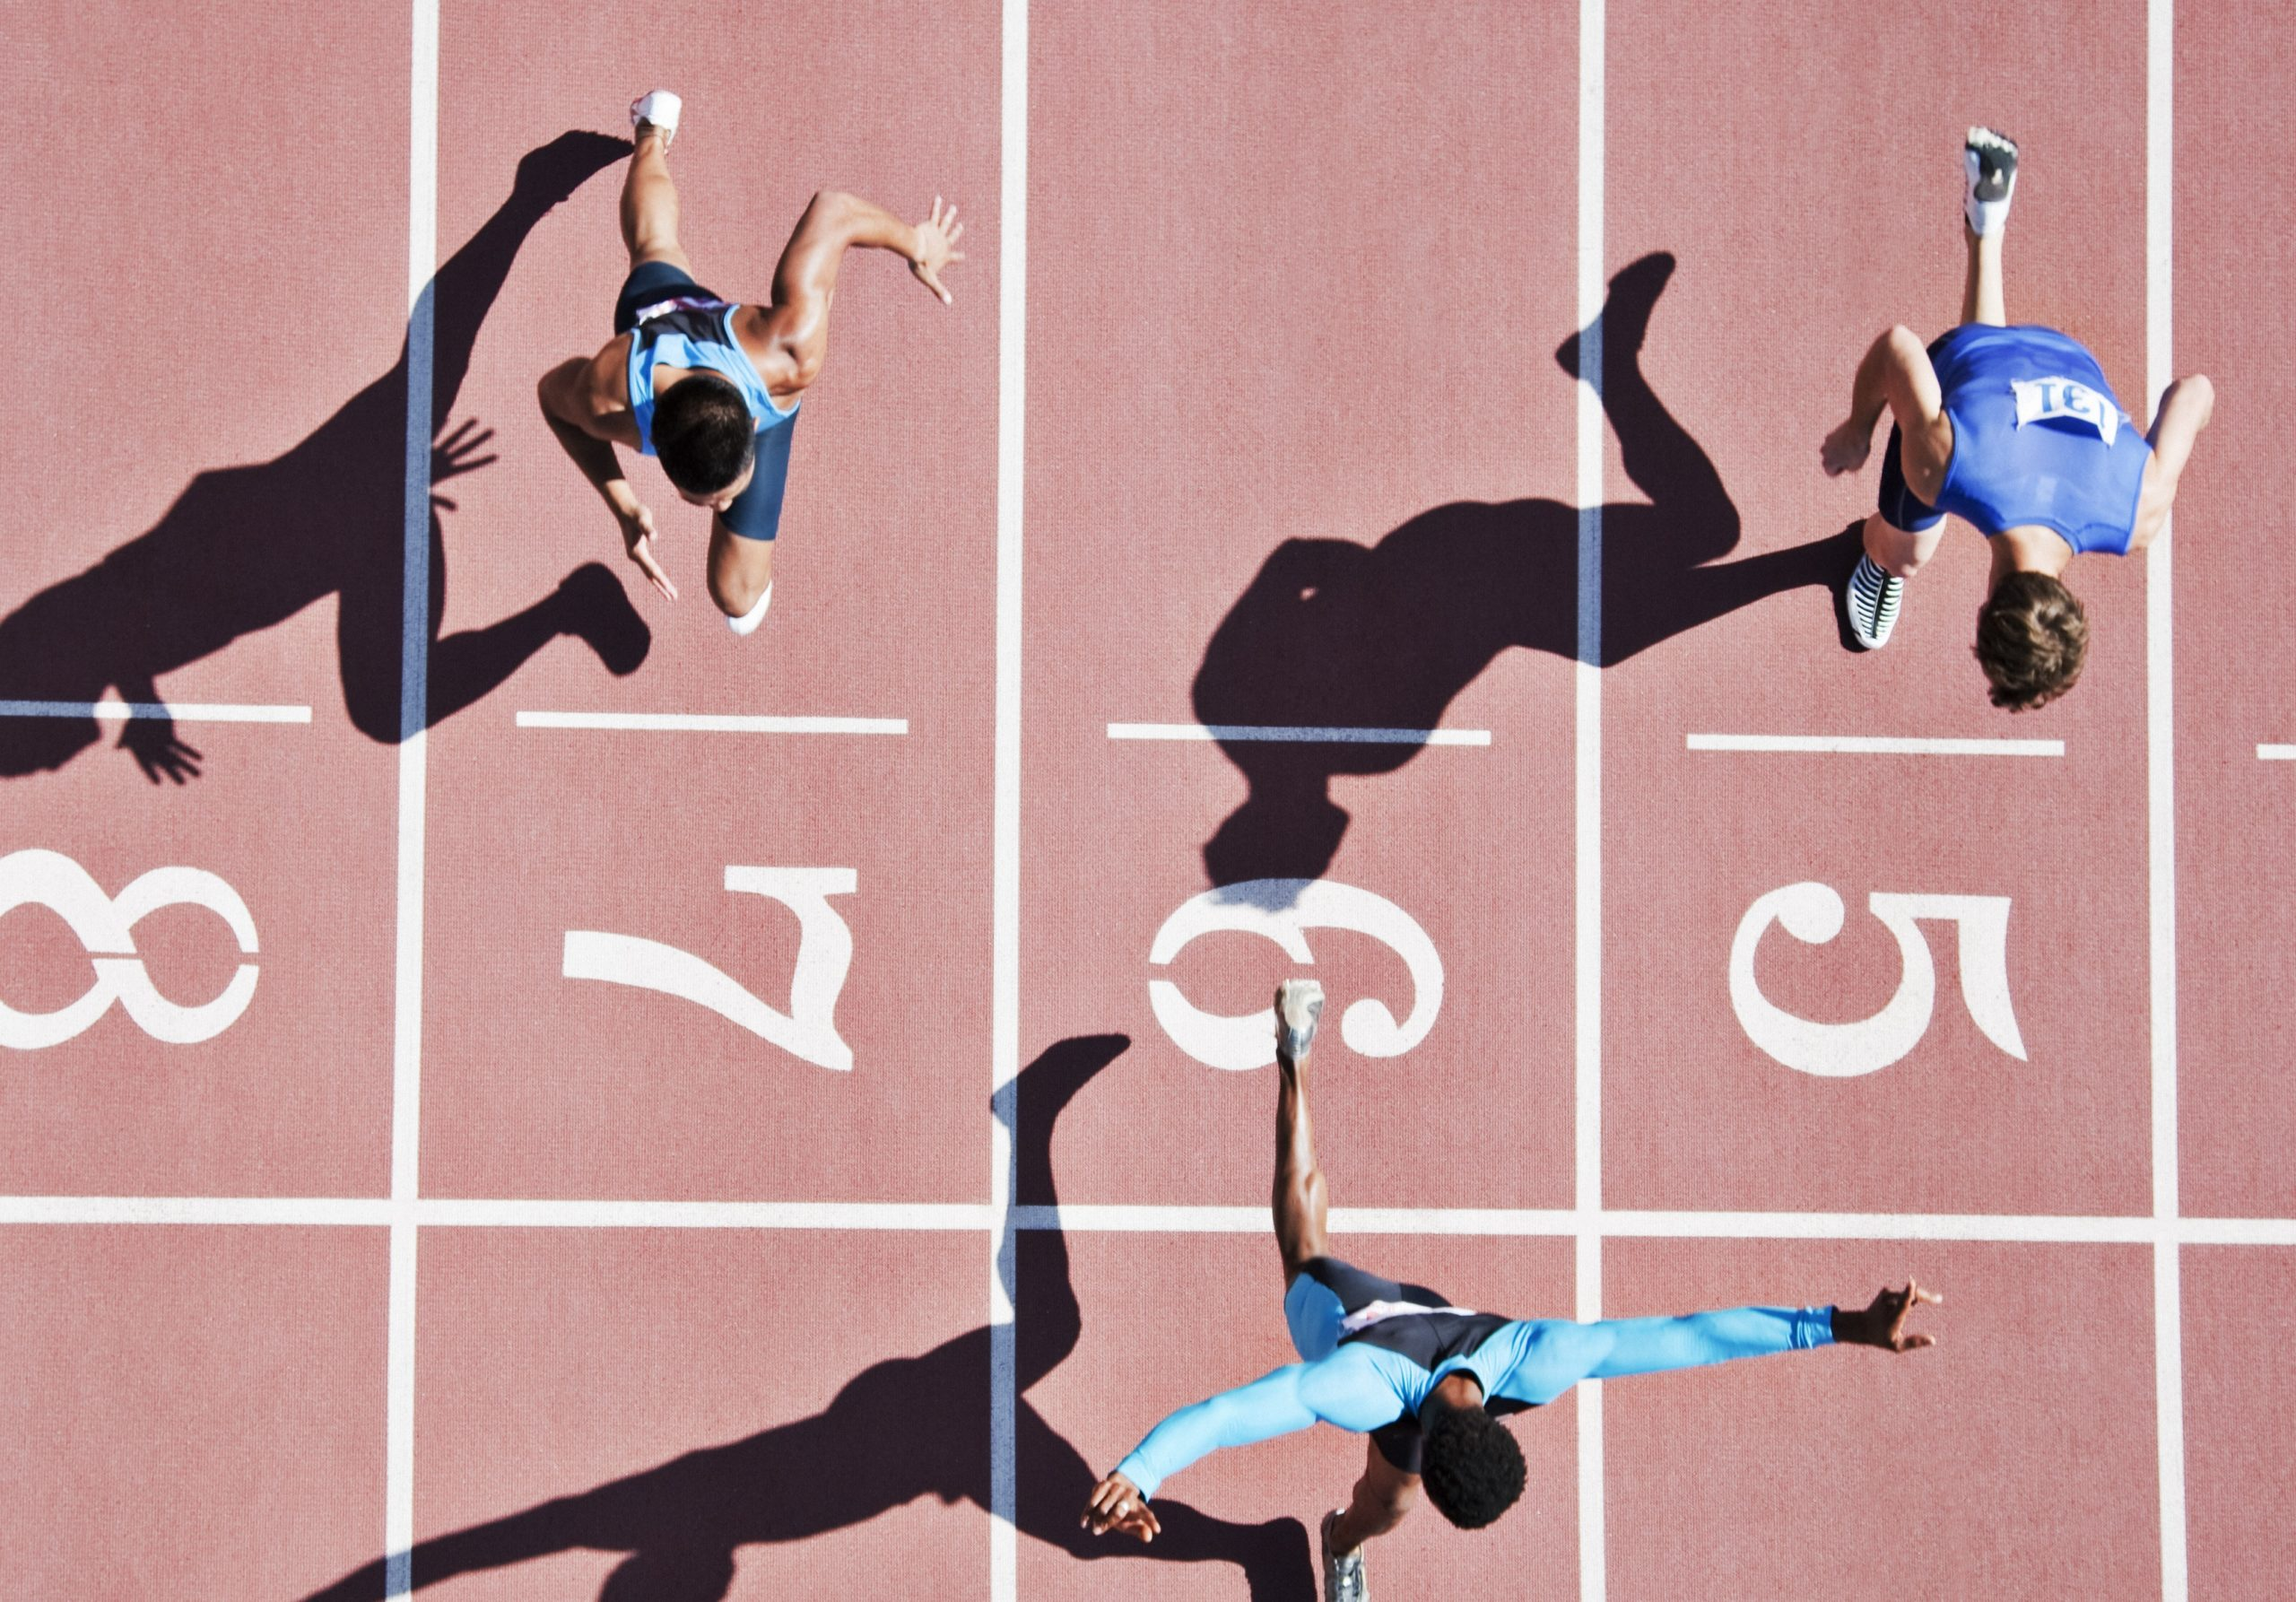 Fast Money: The Innovation Race Between Established and Upstart Financial Services Firms